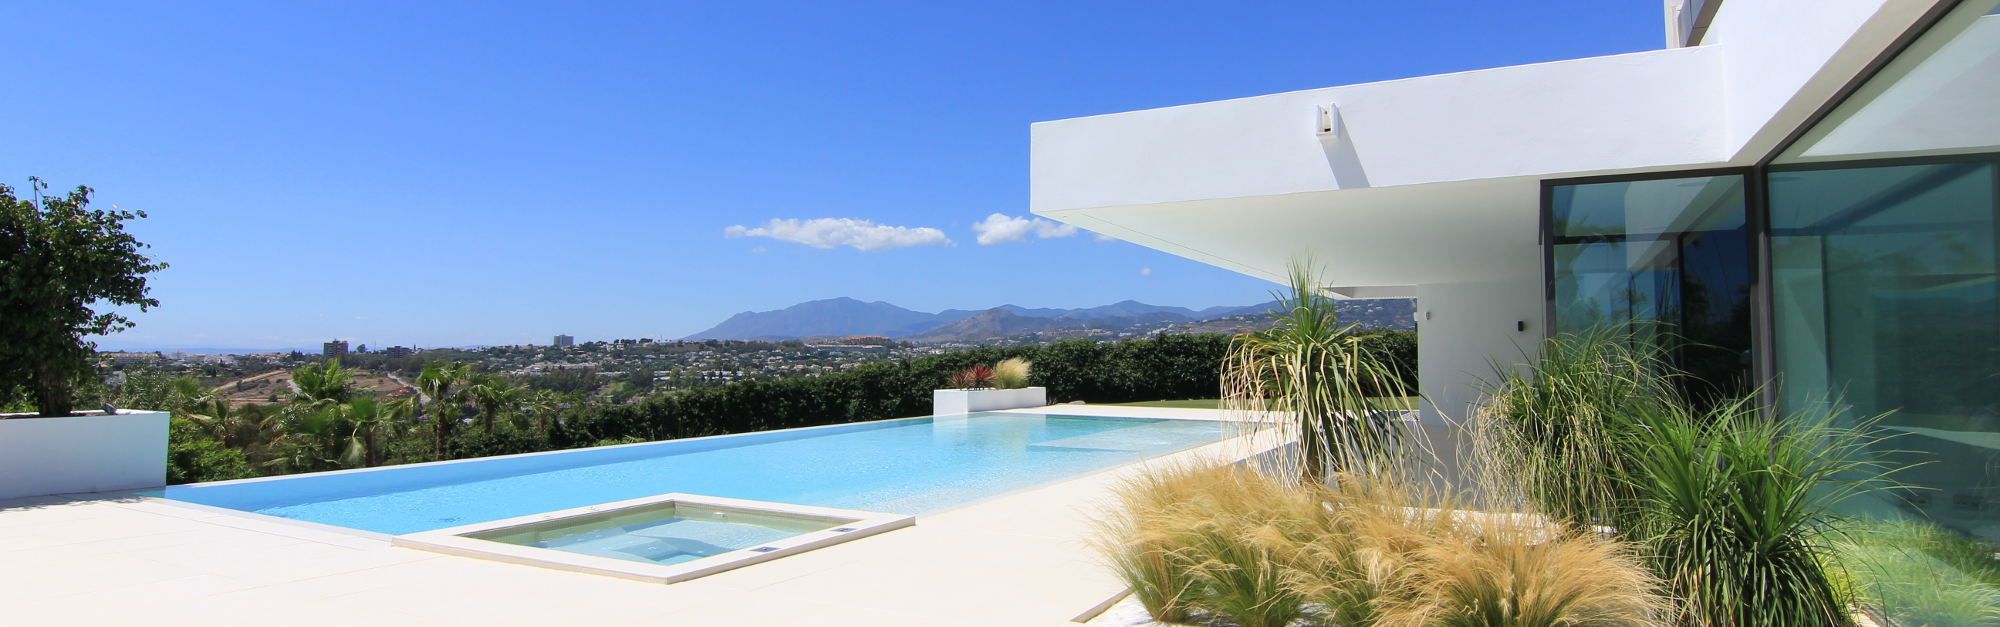 Luxury villa Marbella with pool.